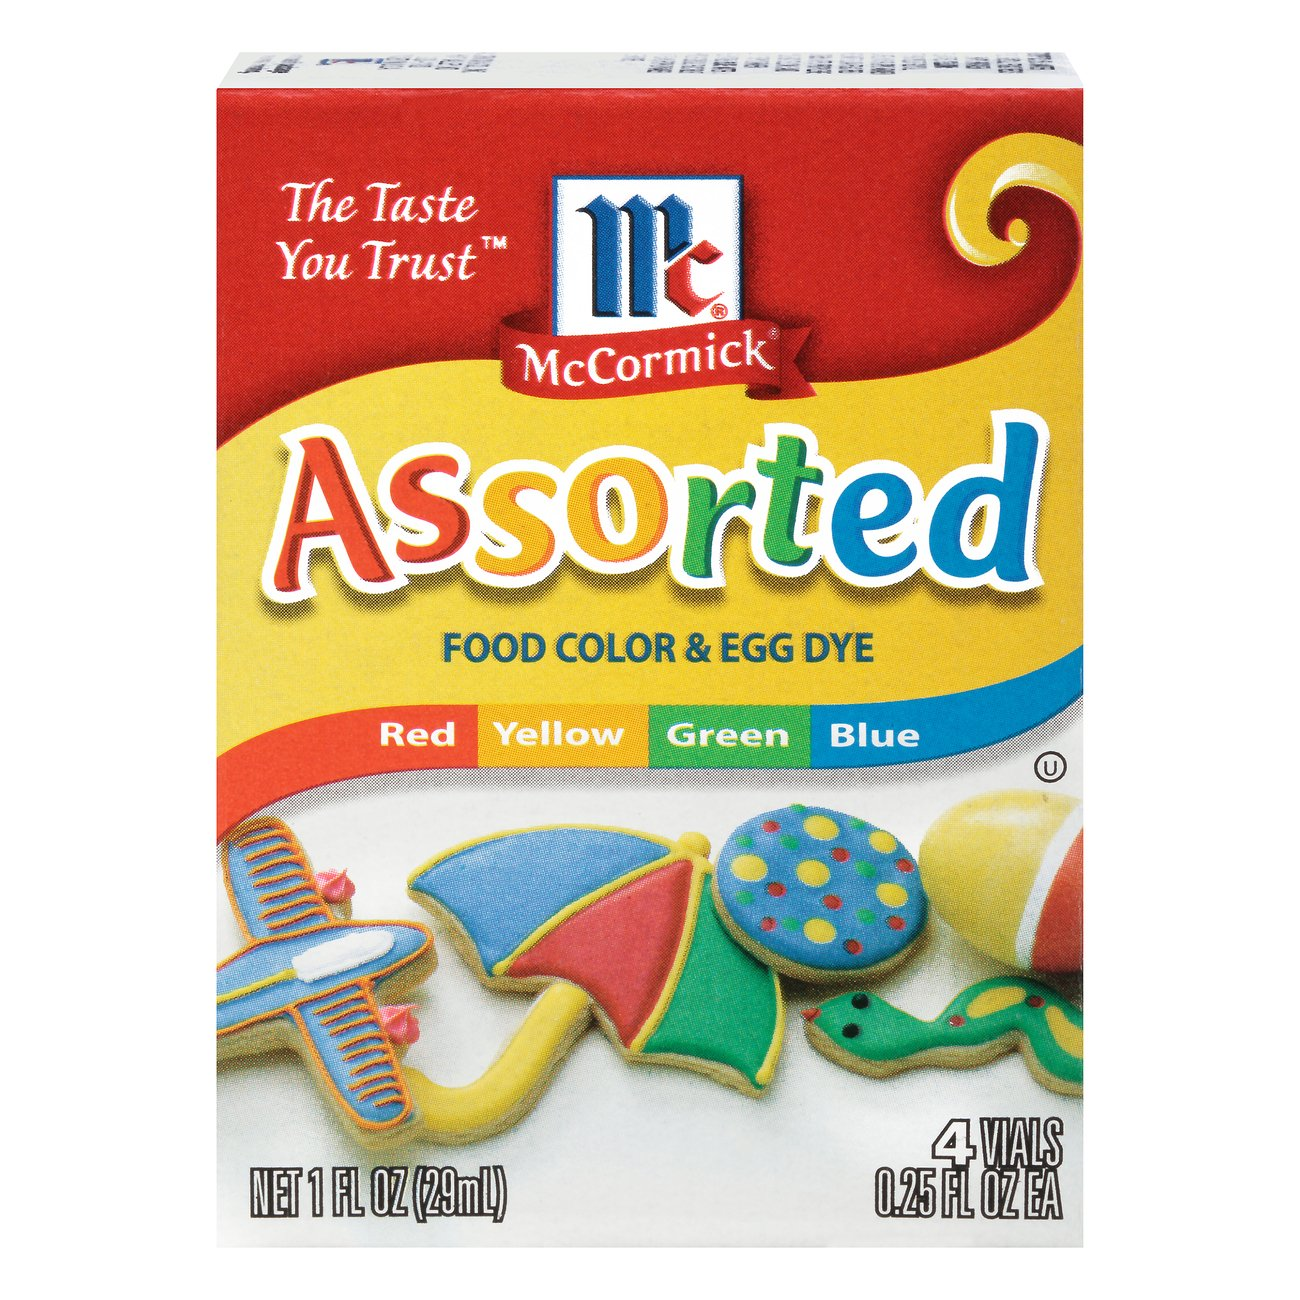 McCormick Assorted Food Color and Egg Dye - Shop Extracts at HEB